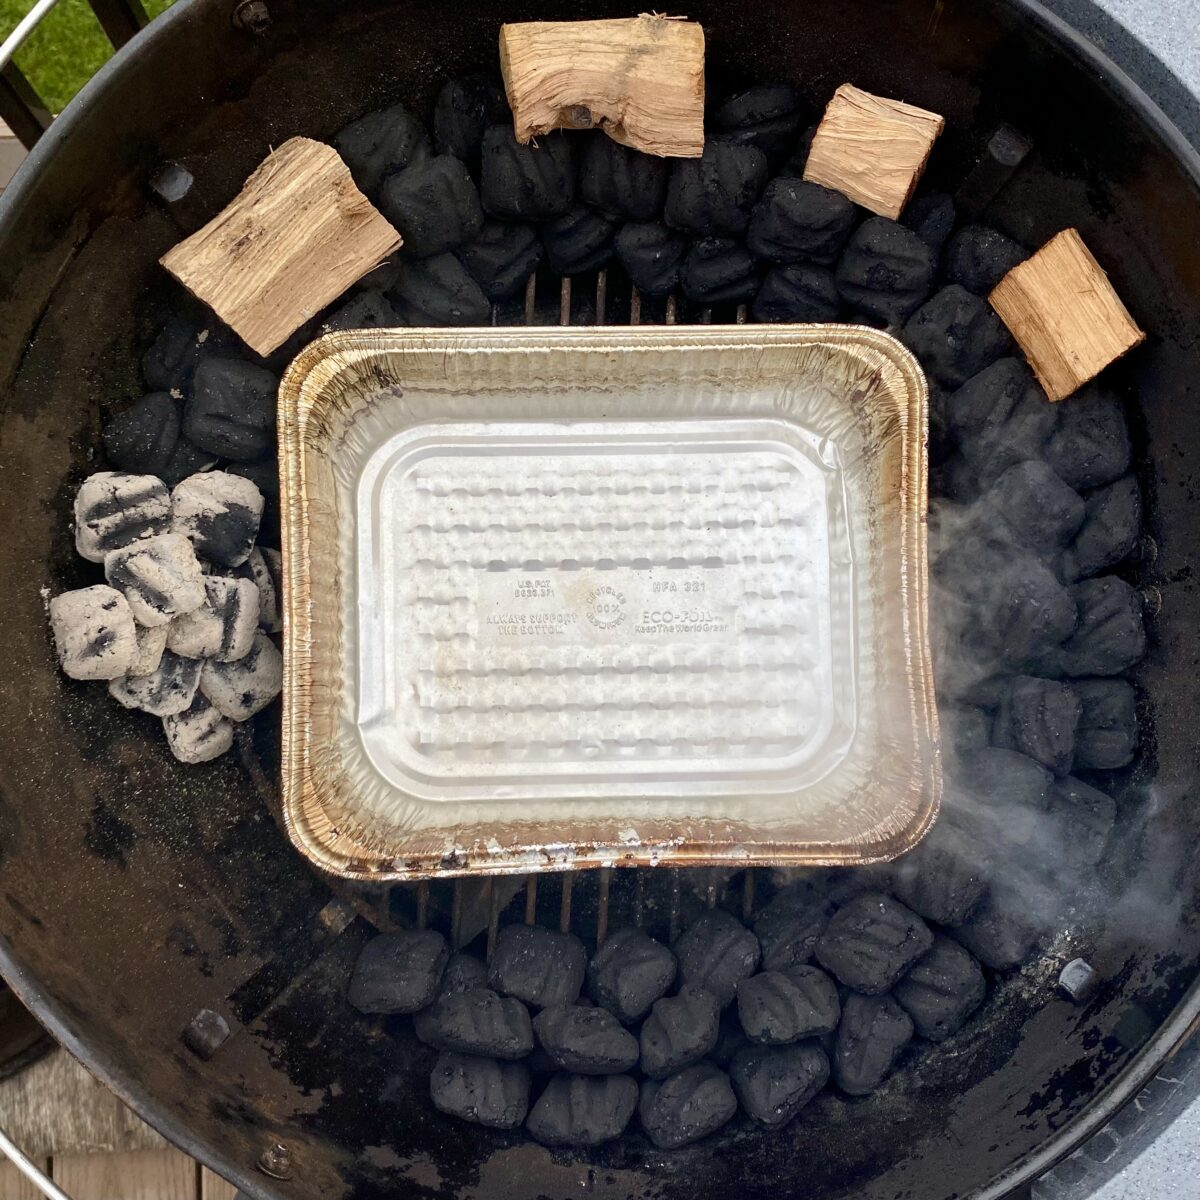 Overhead view showing water pan filled with boiling water in the middle of snake of coals that have just been lit.